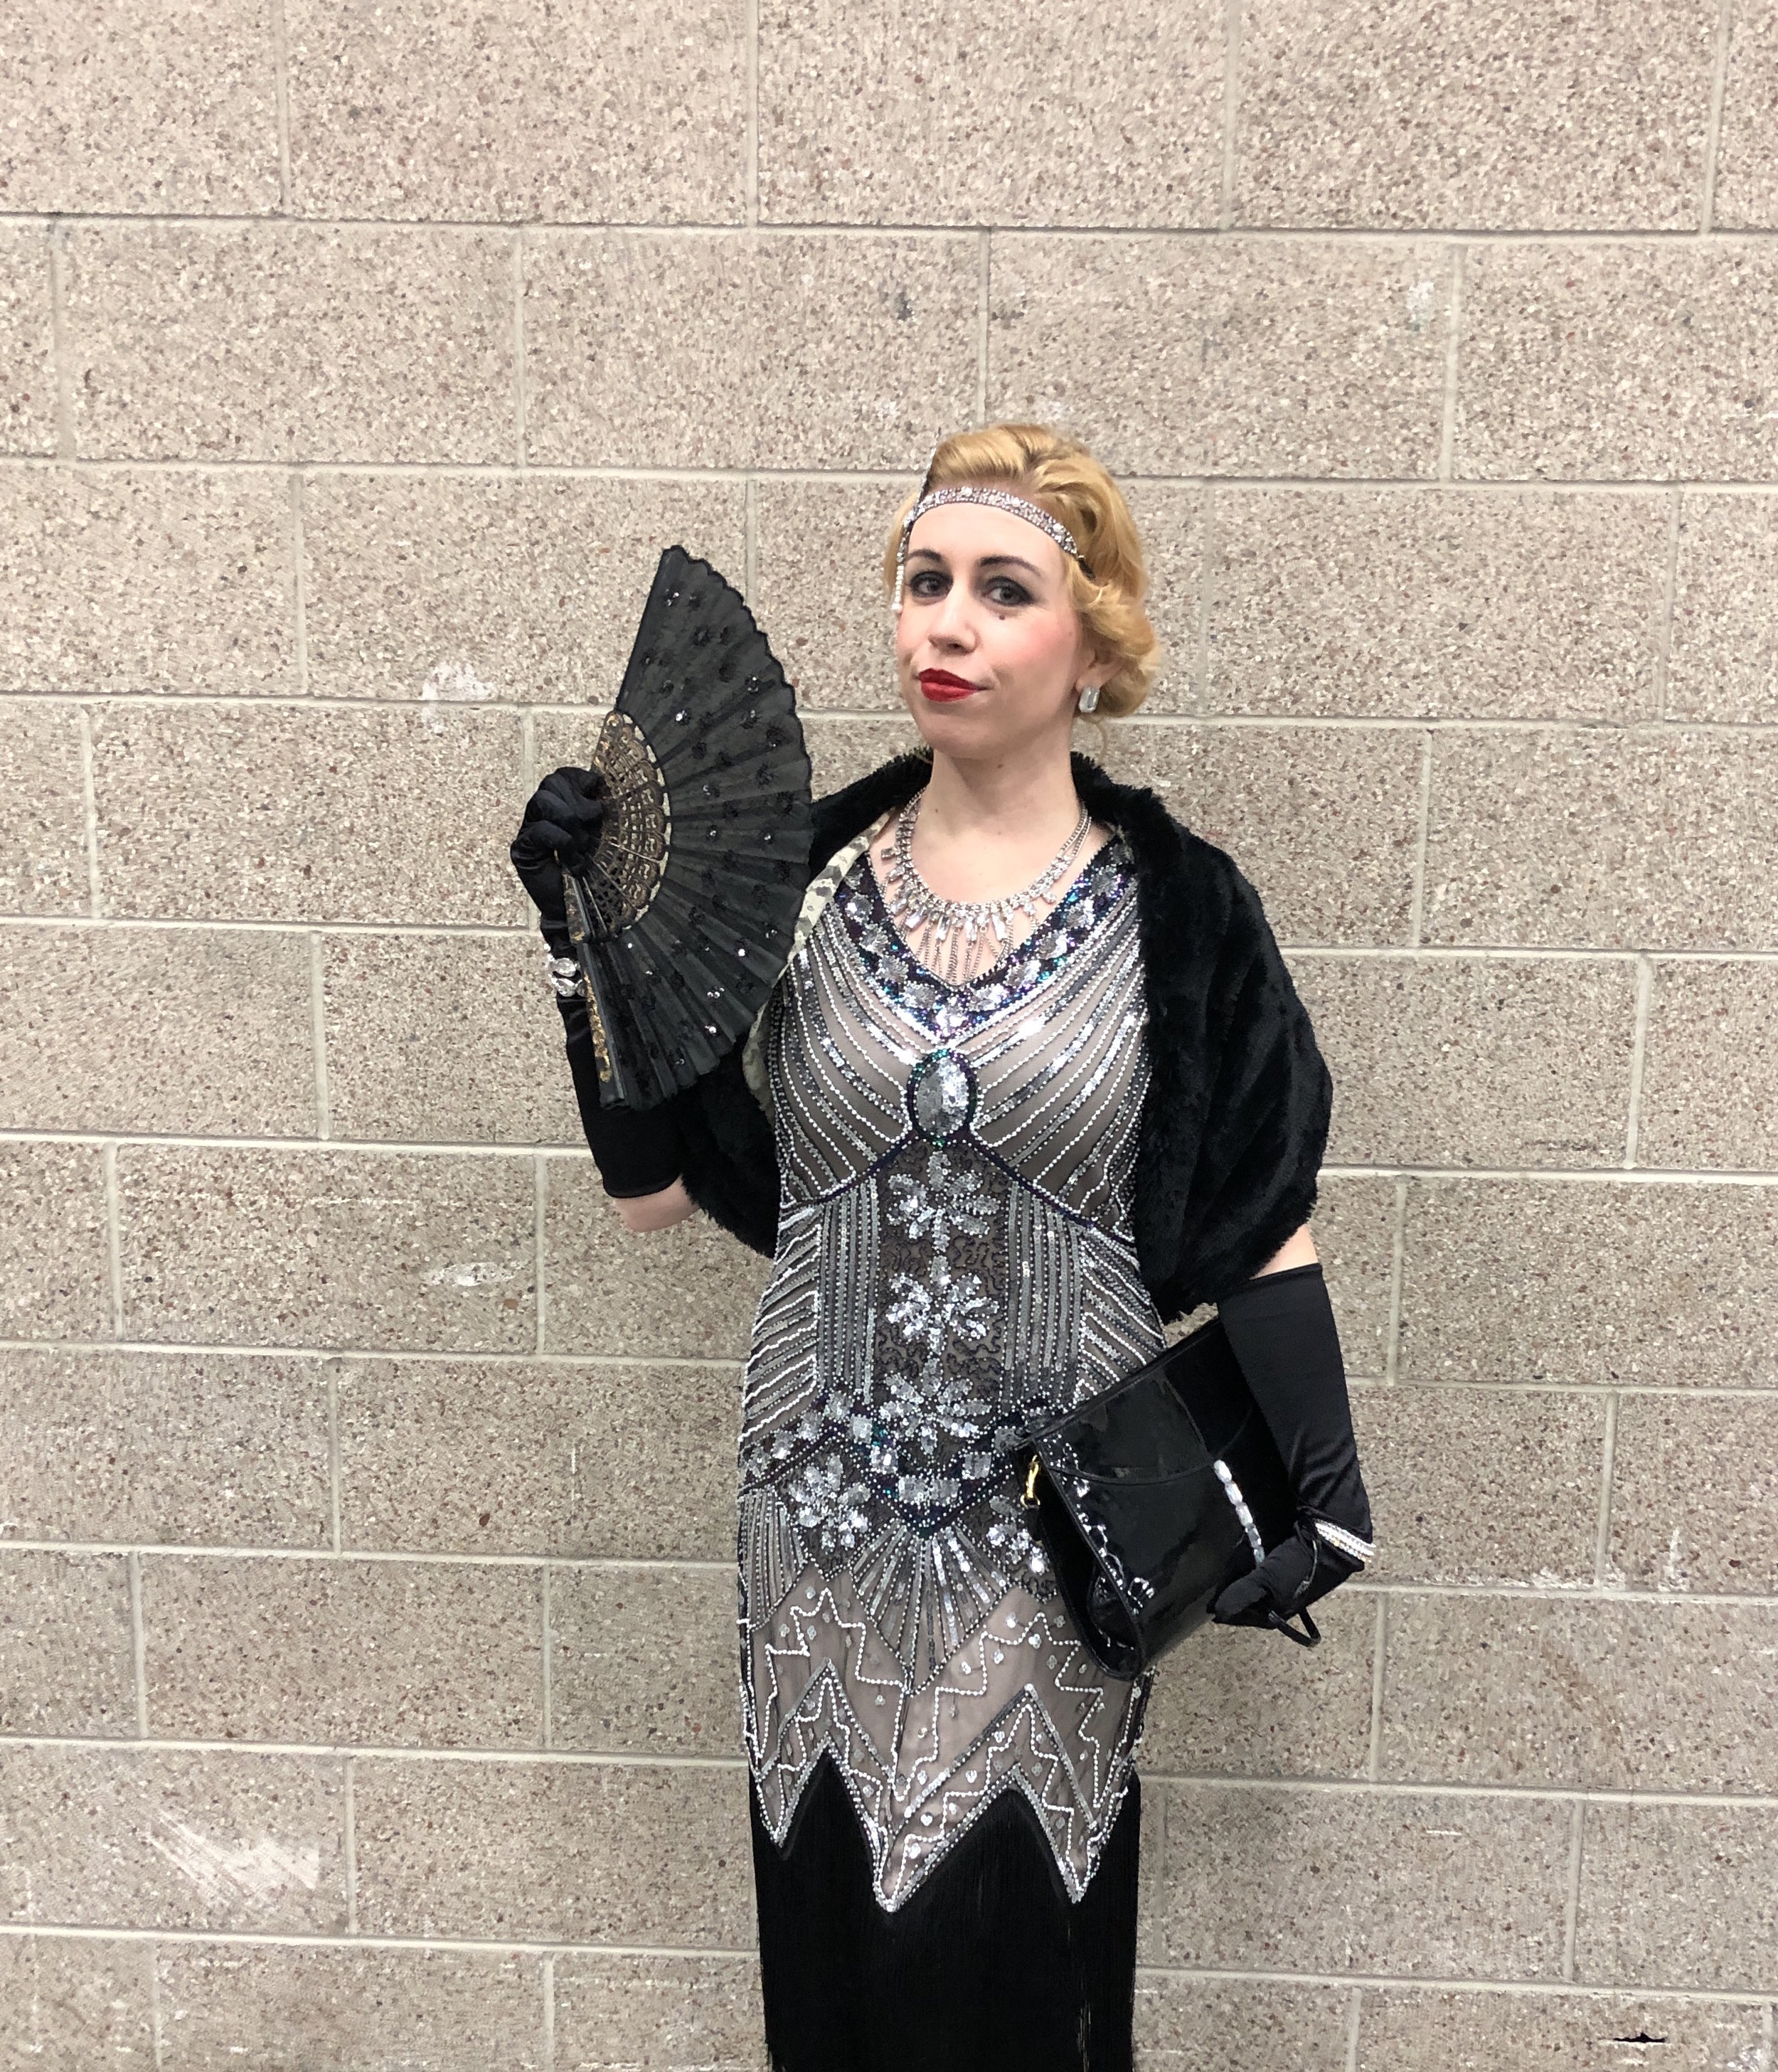 The elegant Great Gatsby flapper cosplayer.